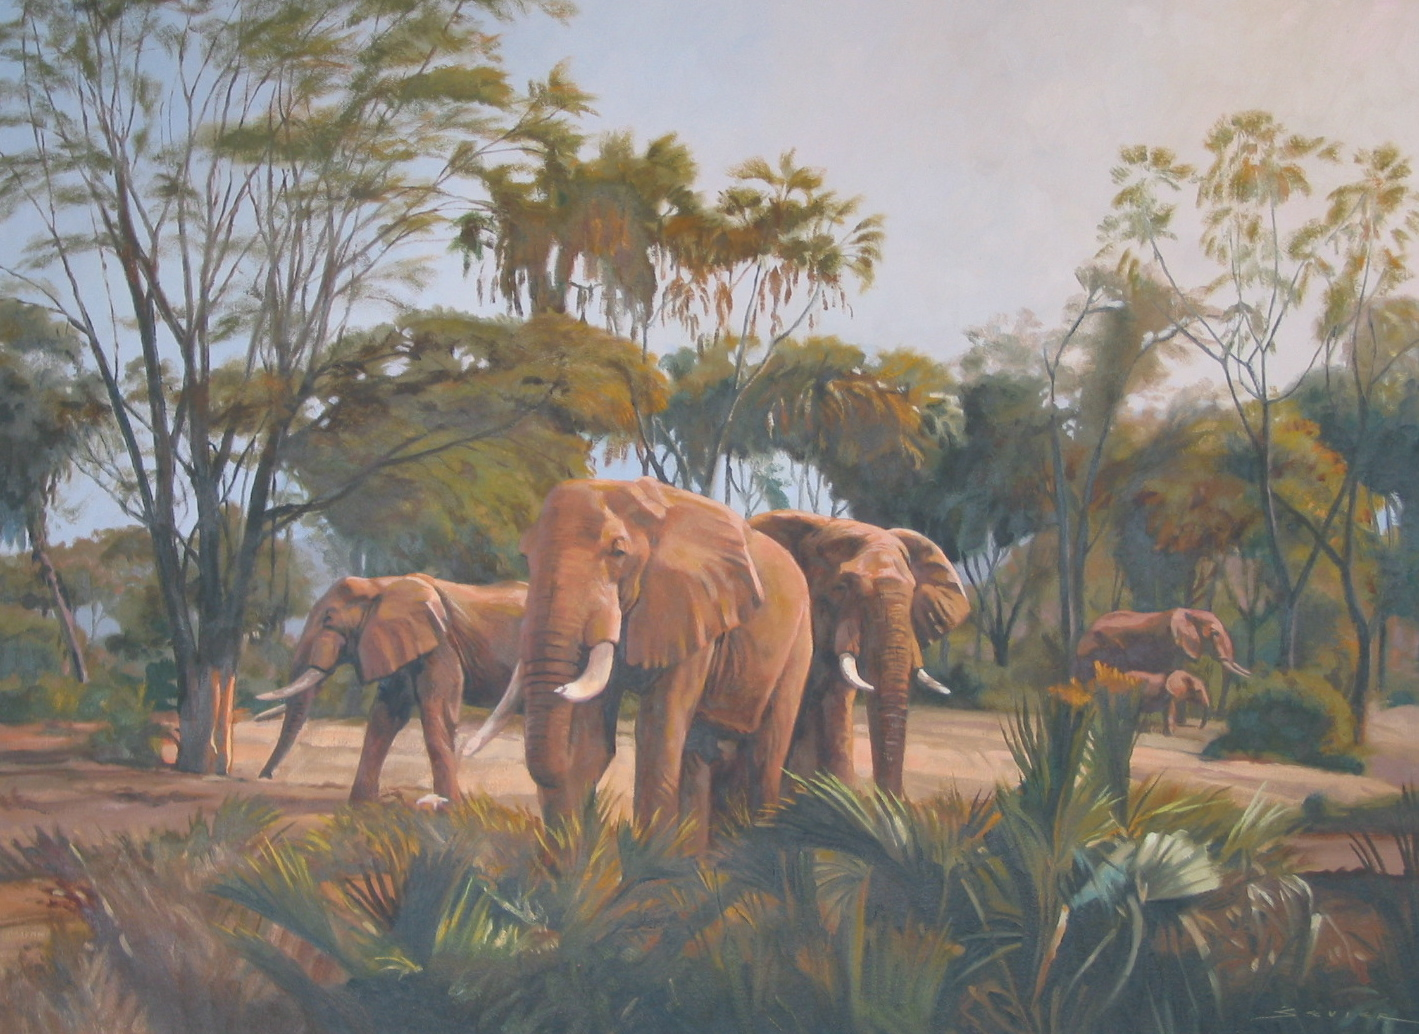 Elephants/Masai Mara Kenya, 22 x 30, oil